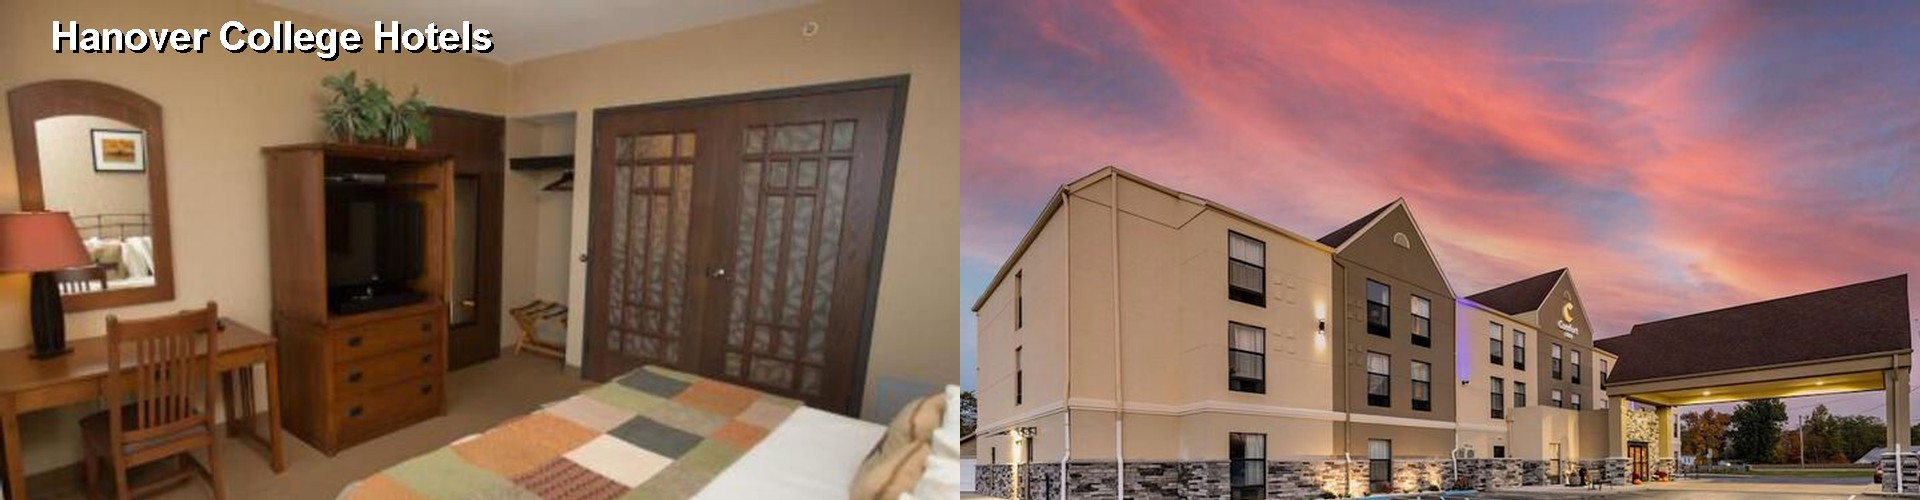 46 Hotels Near Hanover College In